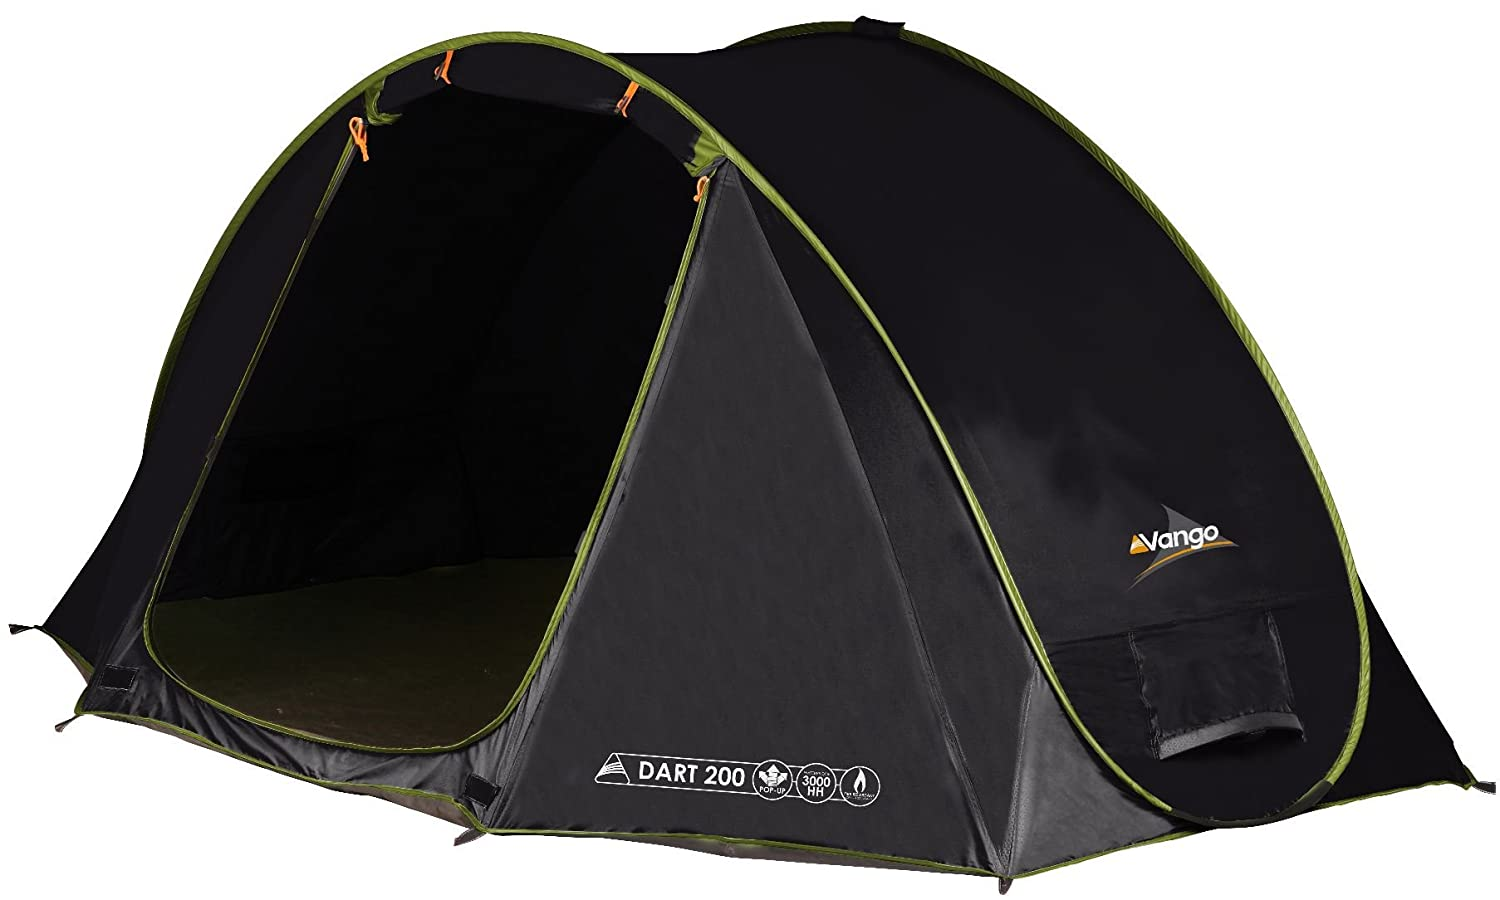 Vango Pop-Up Tent Dart 200 / 230 x 180 x 105 CM Black black / treetops Size230x180x105cm Amazon.co.uk Sports u0026 Outdoors  sc 1 st  Amazon UK : pop up two man tent - memphite.com